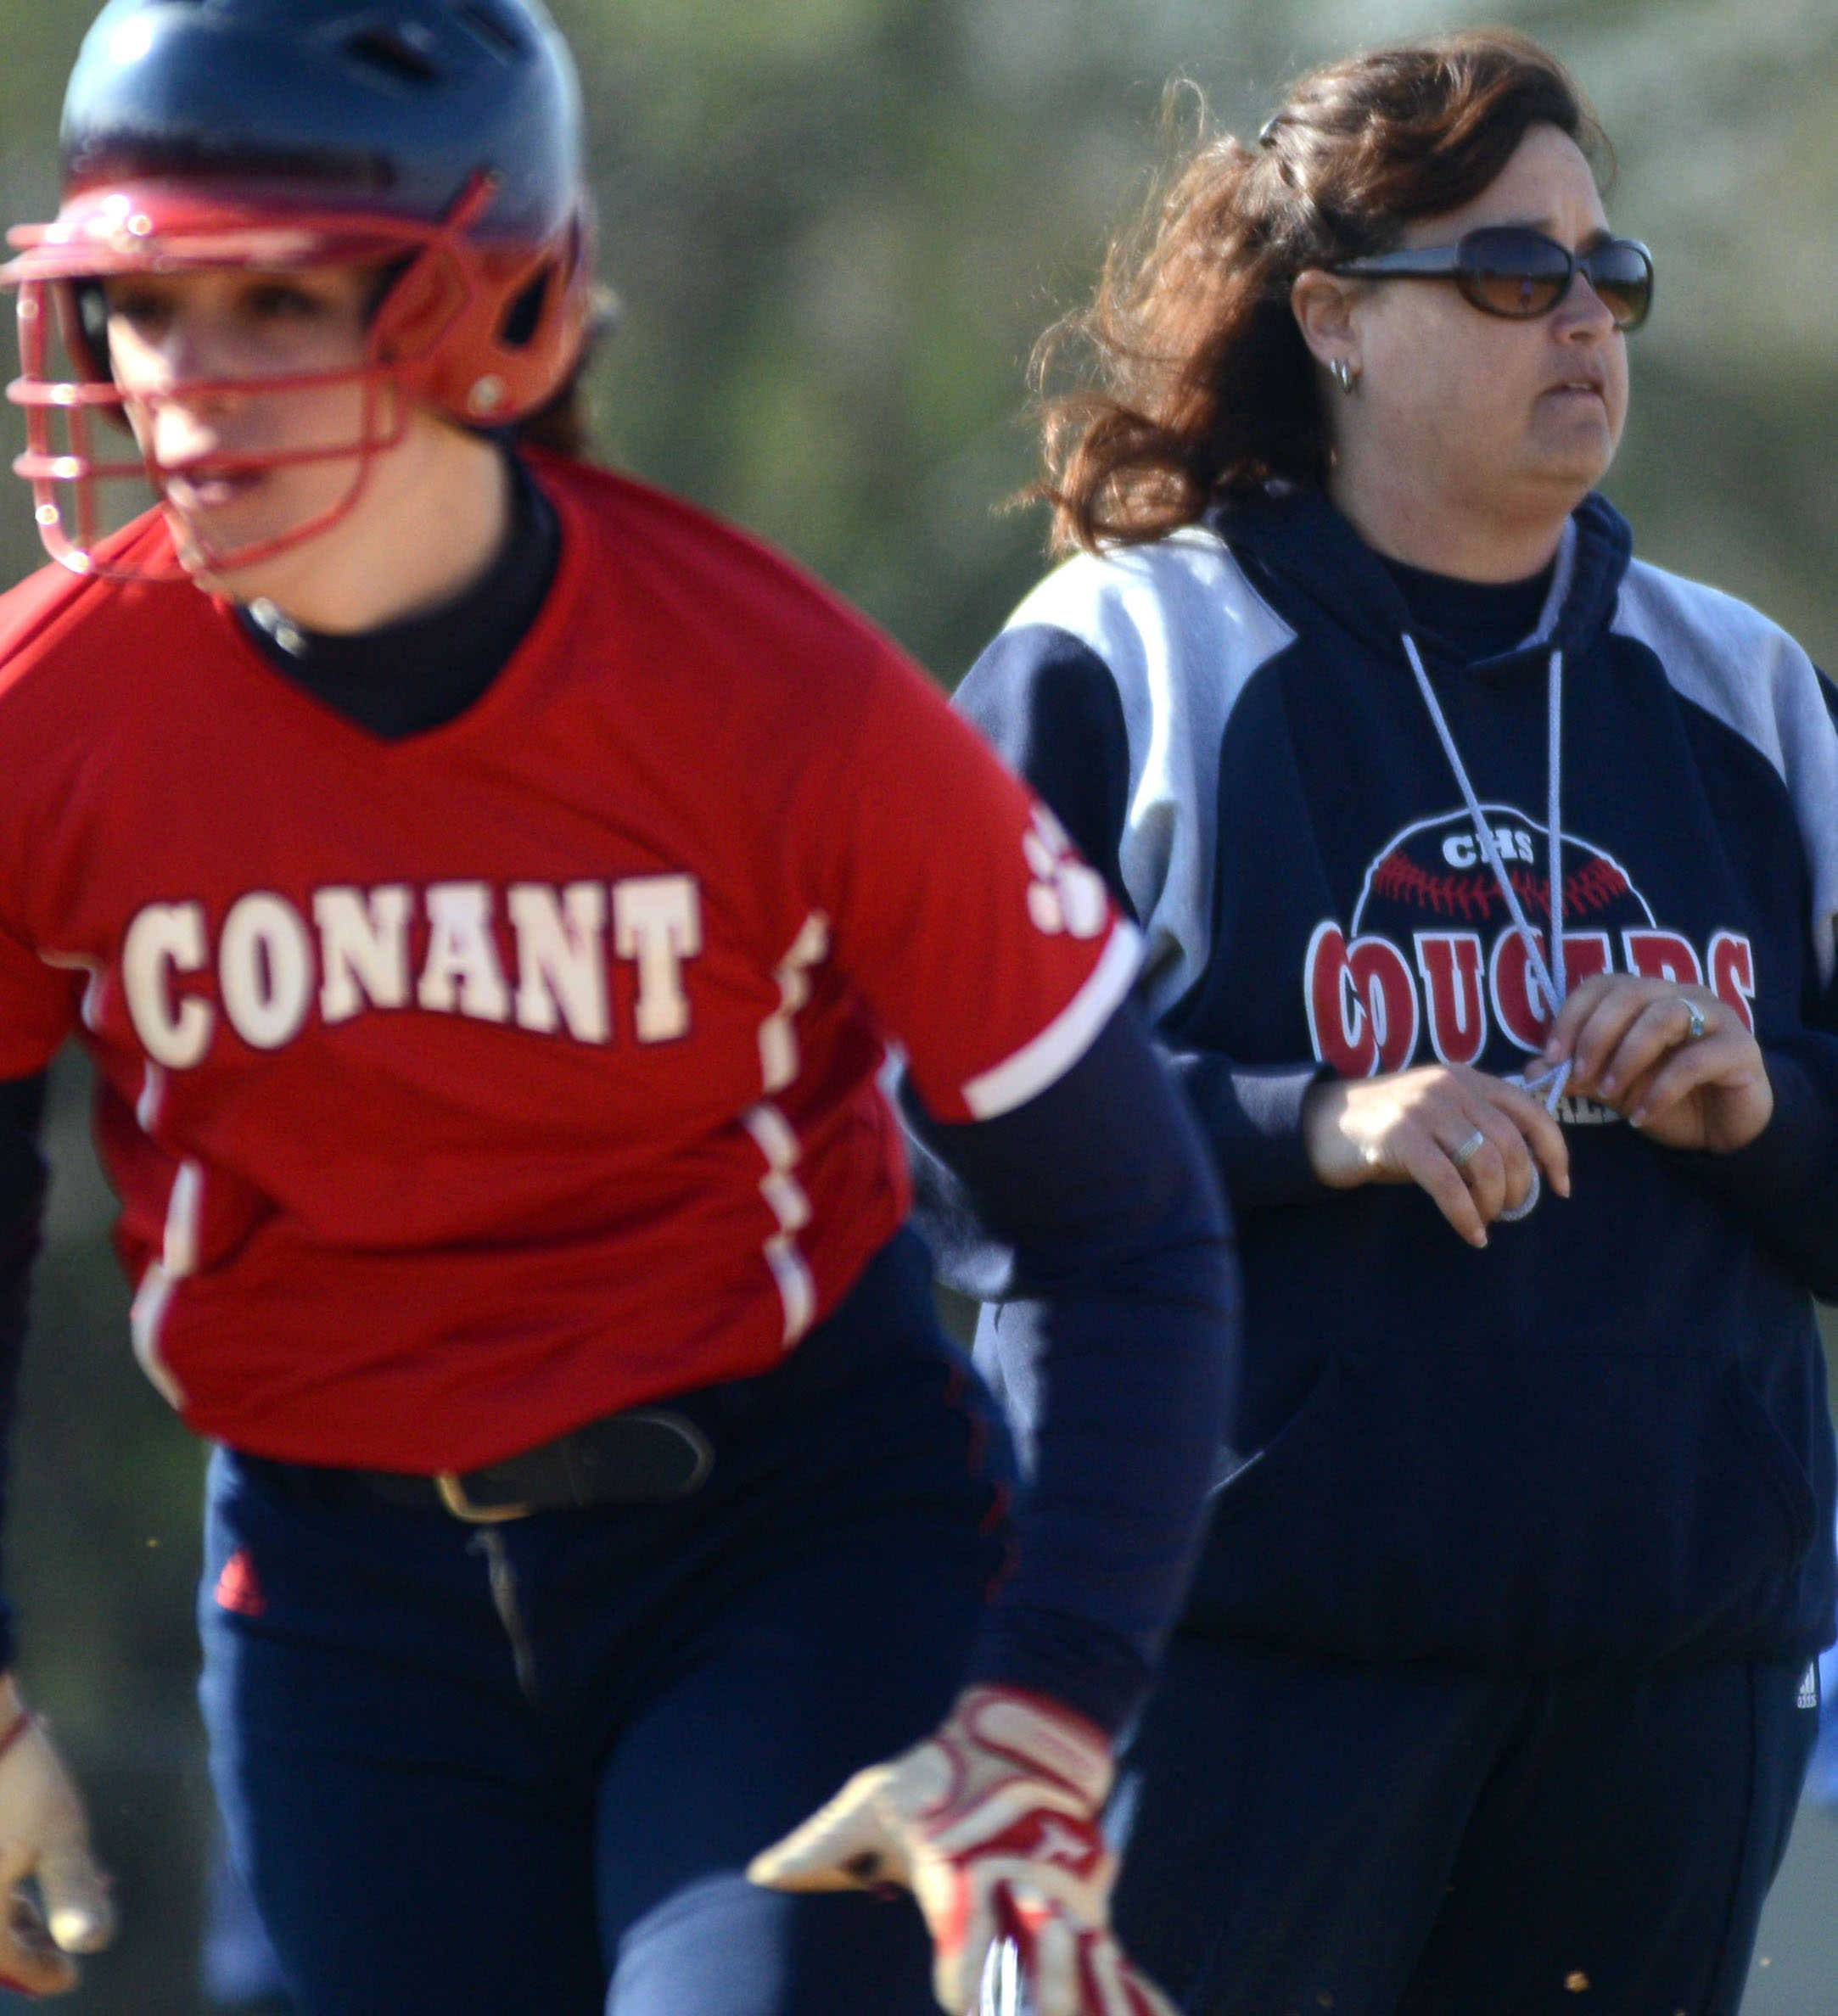 Conant coach CathyAnn Smith keeps an eye on the action from the third base coaching box against visiting Prospect on Monday.